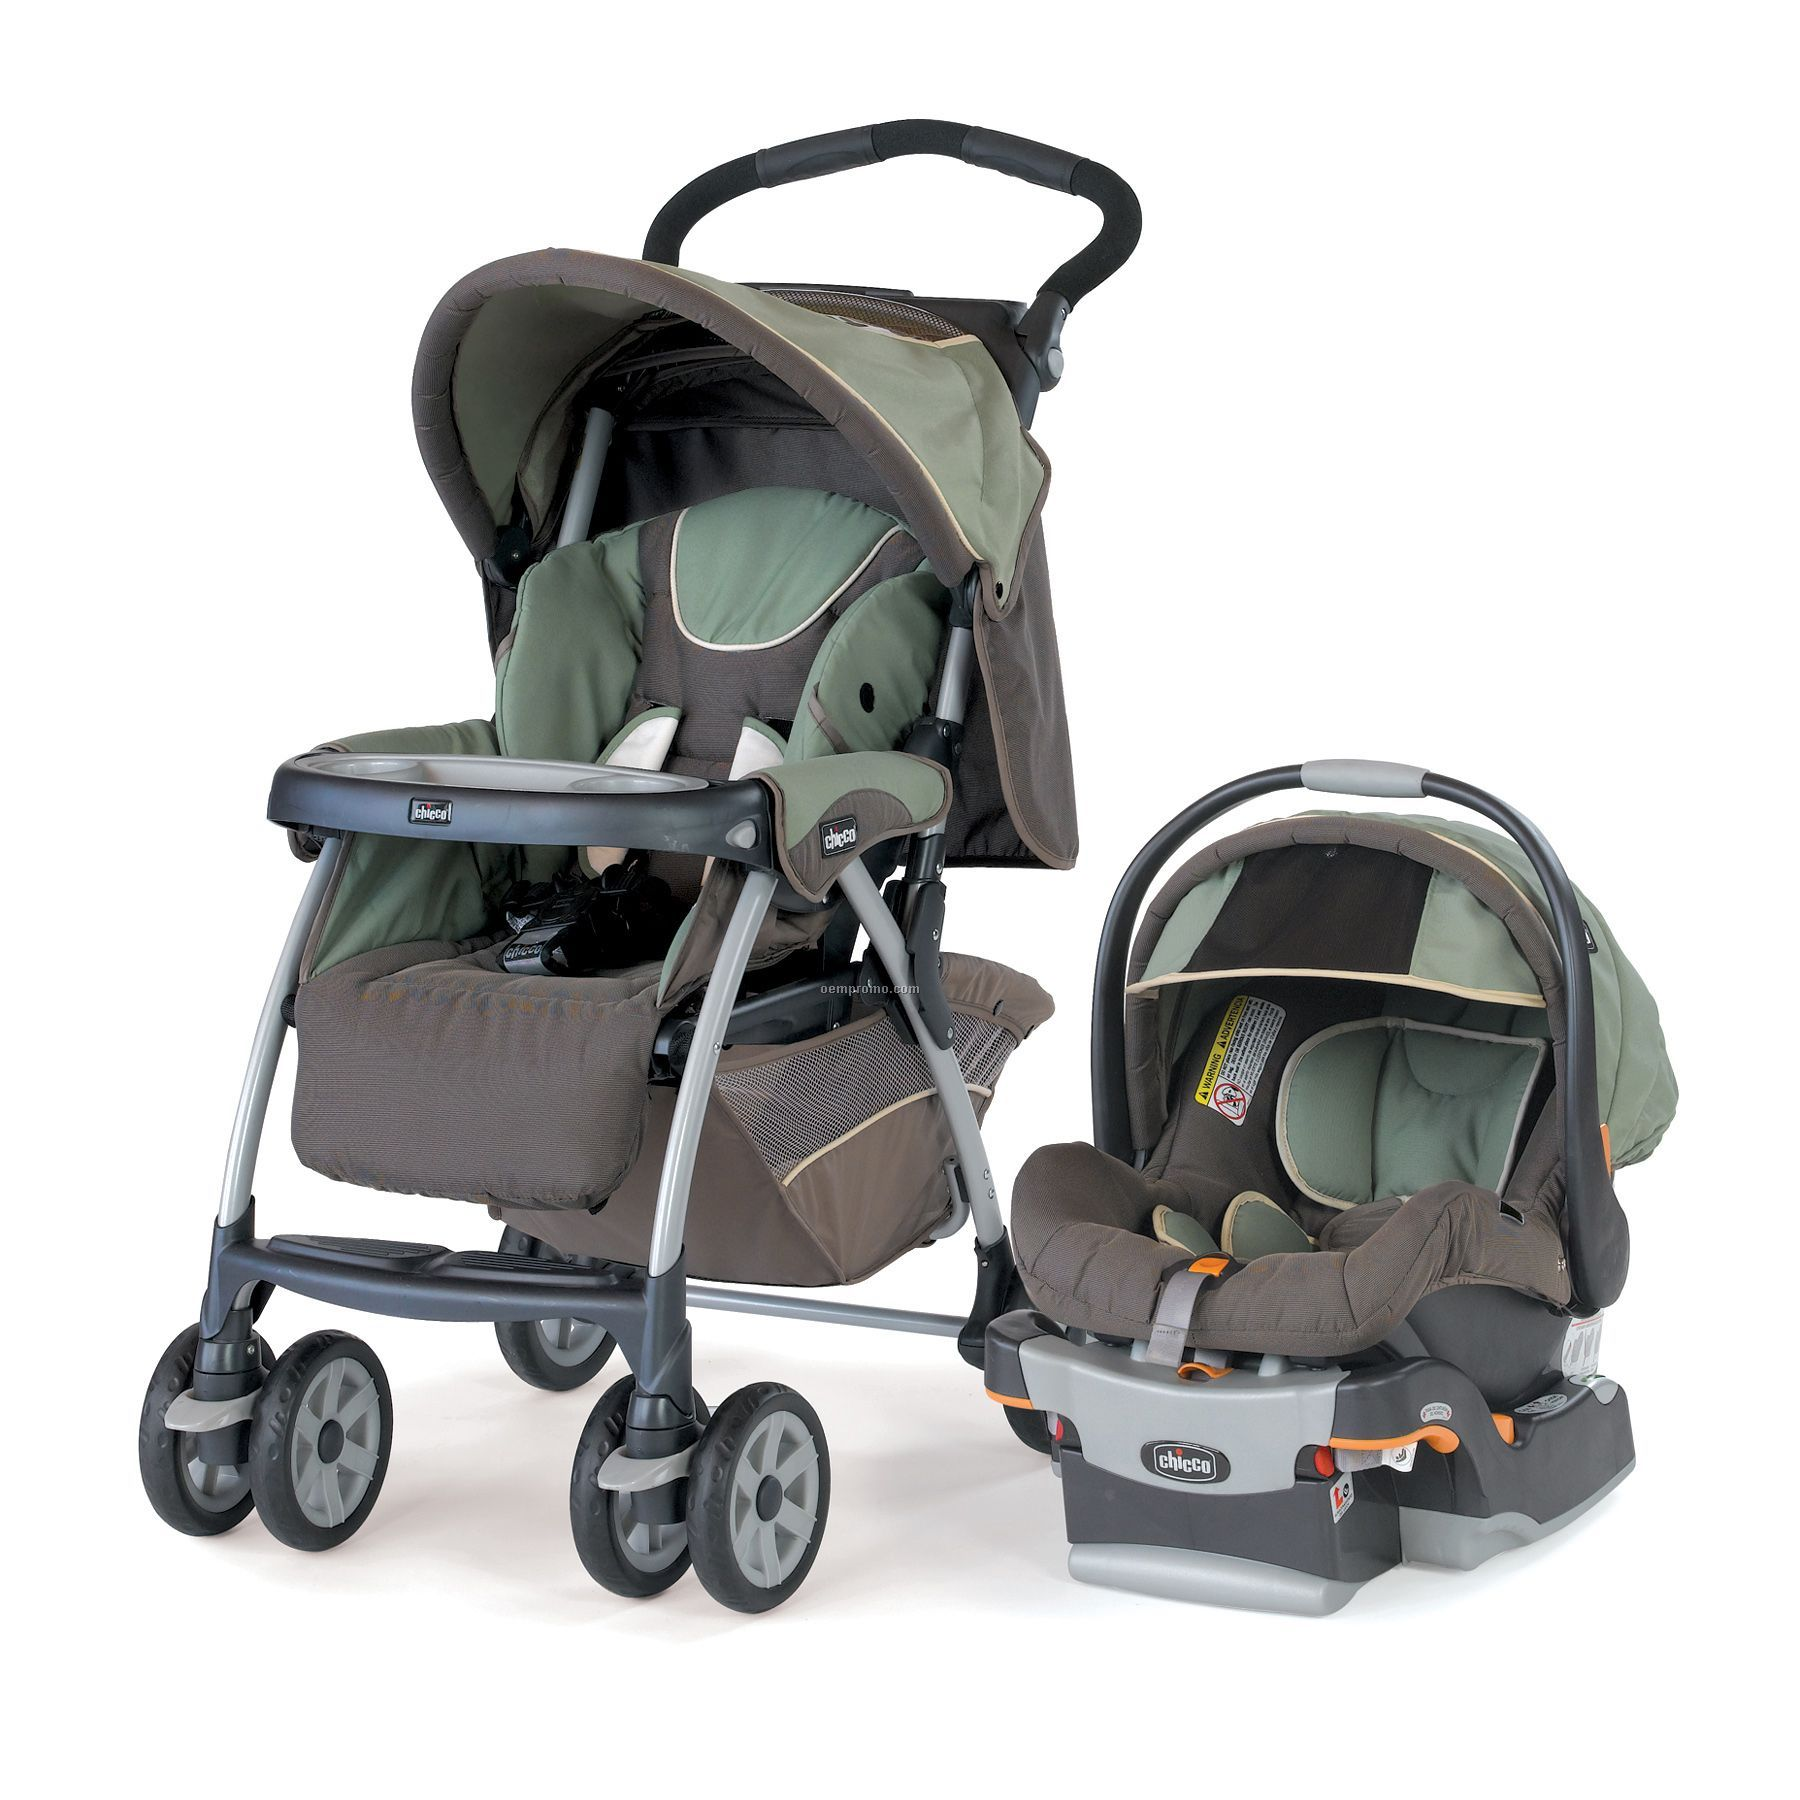 Chicco Cortina Keyfit 30 Travel System, Adventure